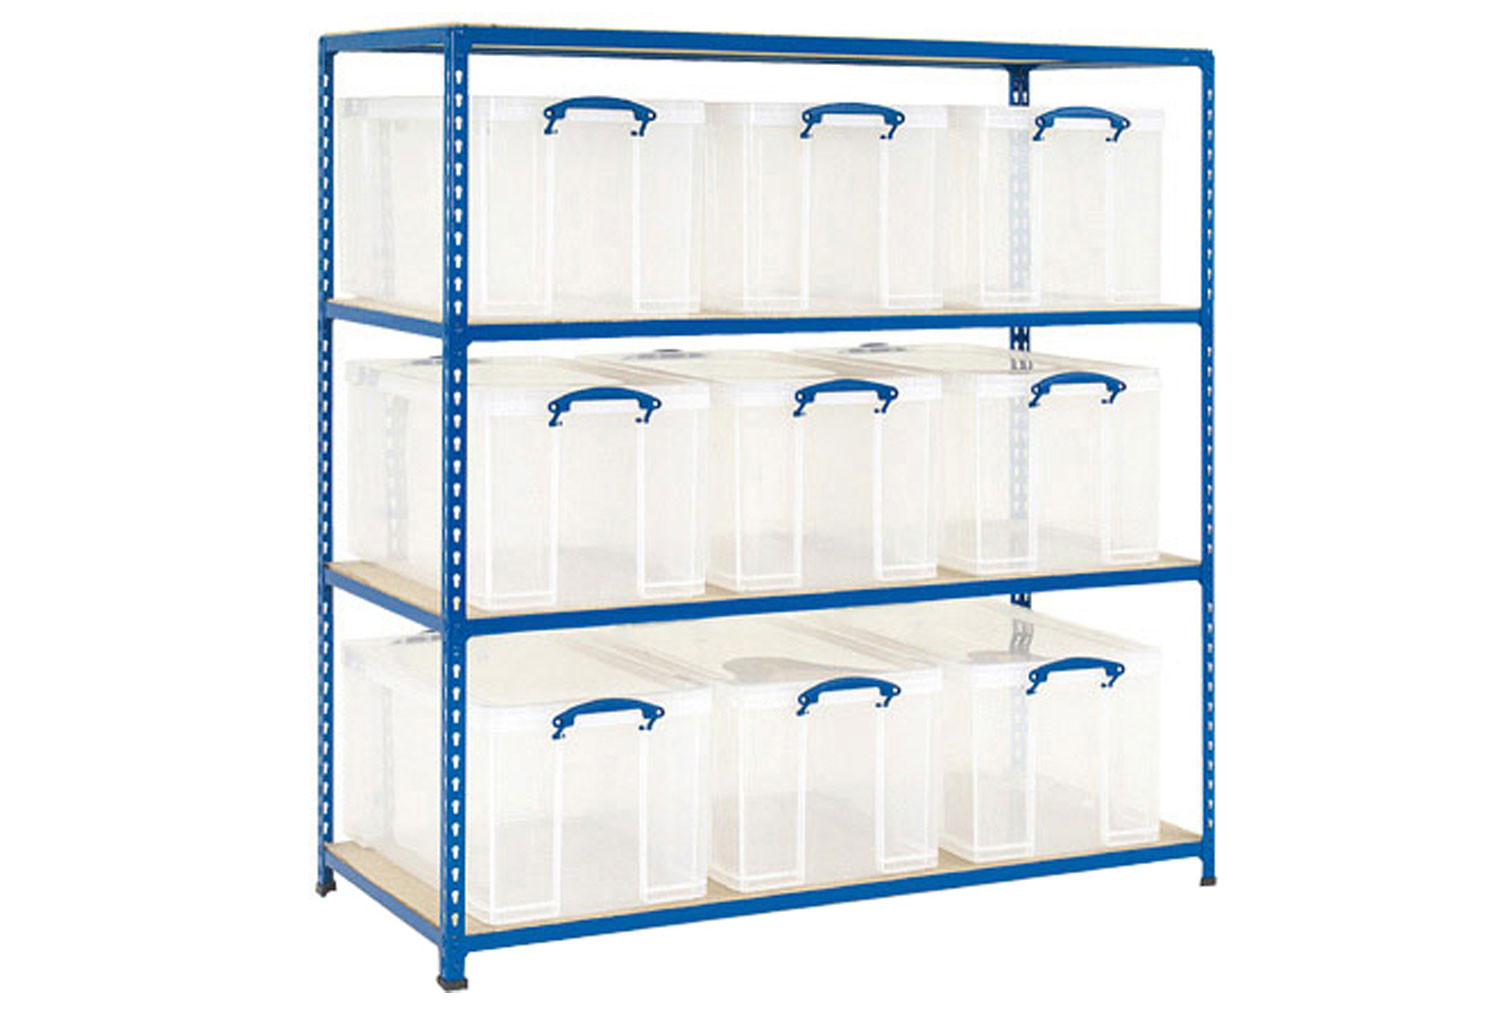 Rapid 2 storage bay with 9 x 84 litre really useful boxes